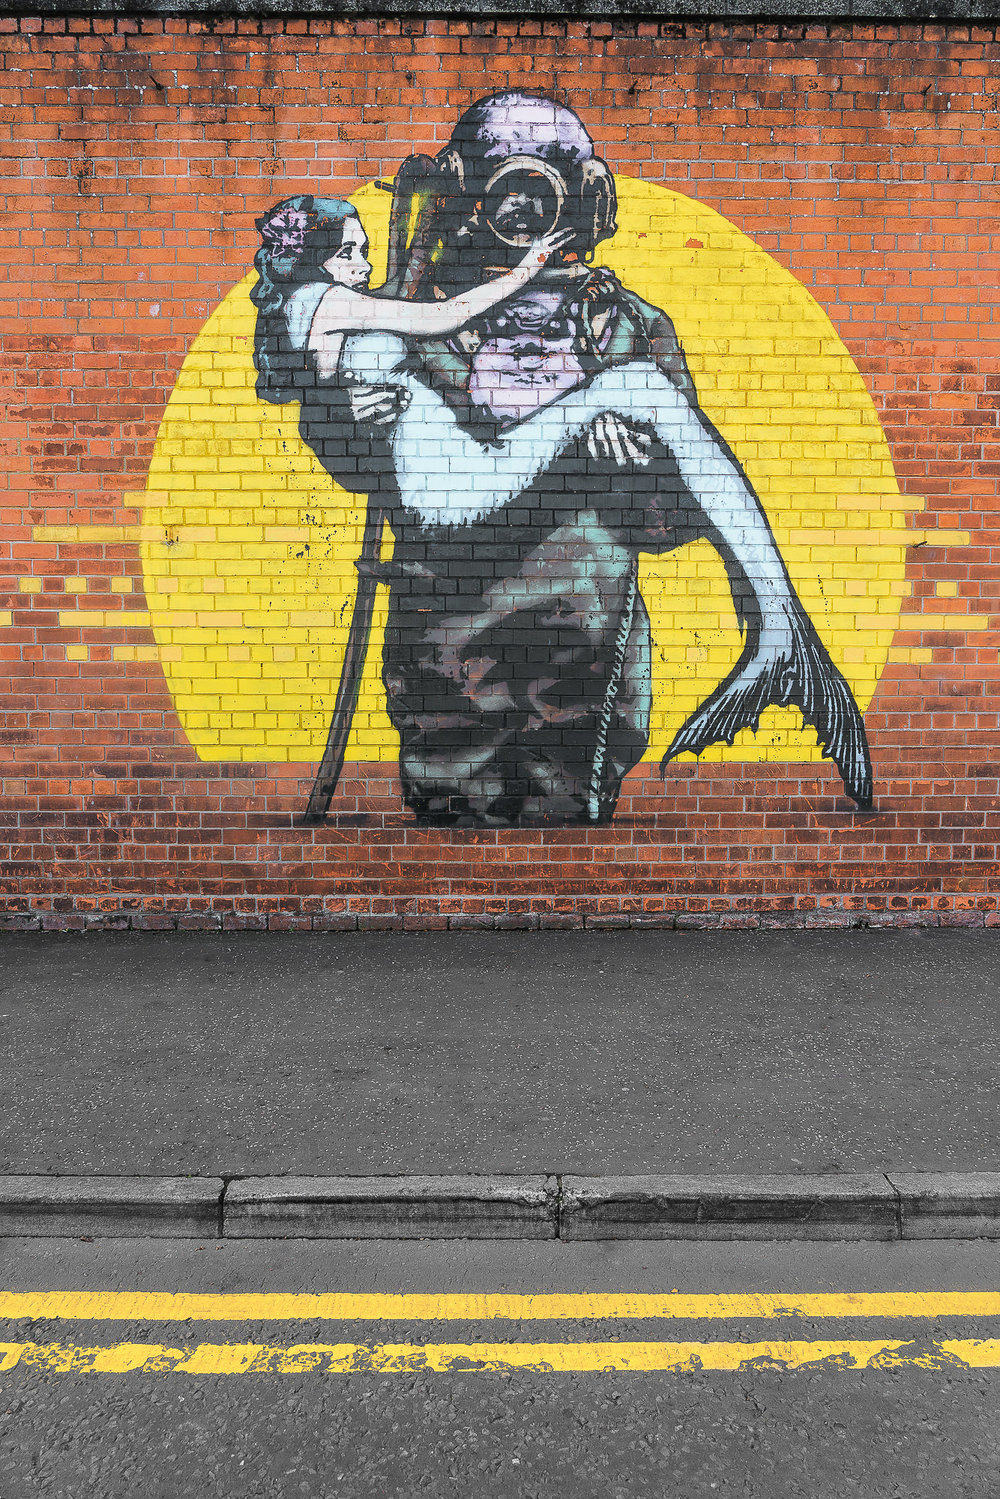 graffiti street art - Belfast Northern Island